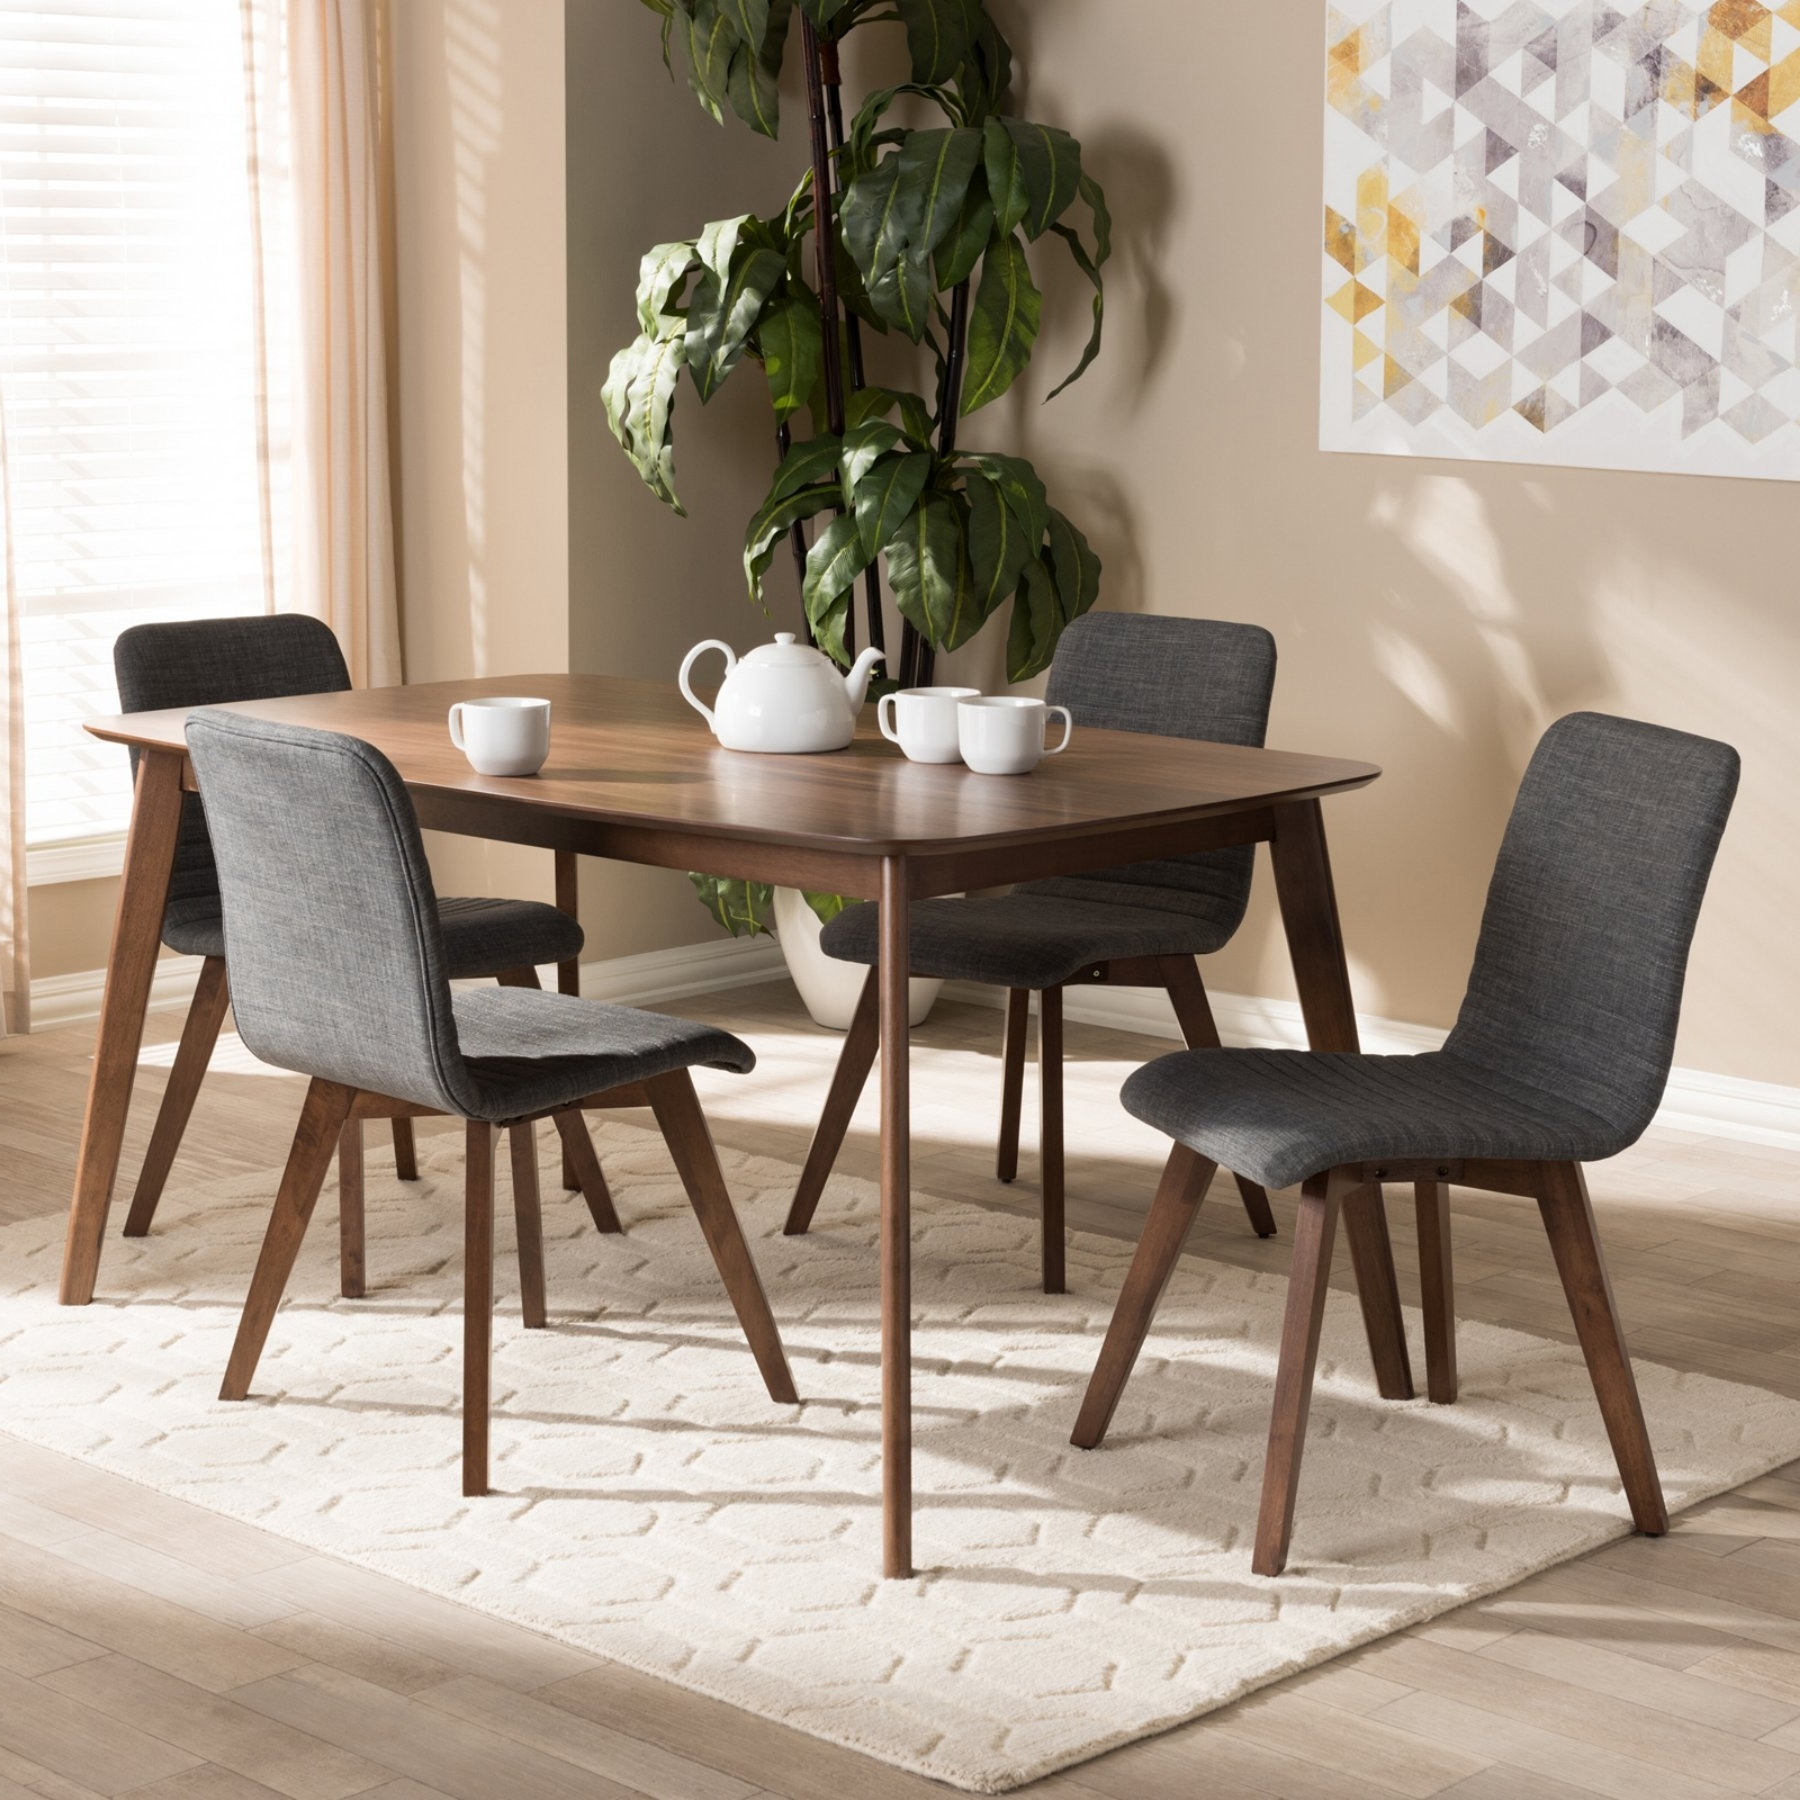 Well Known Craftsman 5 Piece Round Dining Sets With Uph Side Chairs Intended For Baxton Studio Sugar Mid Century Modern Fabric Upholstered 5 Piece (View 24 of 25)